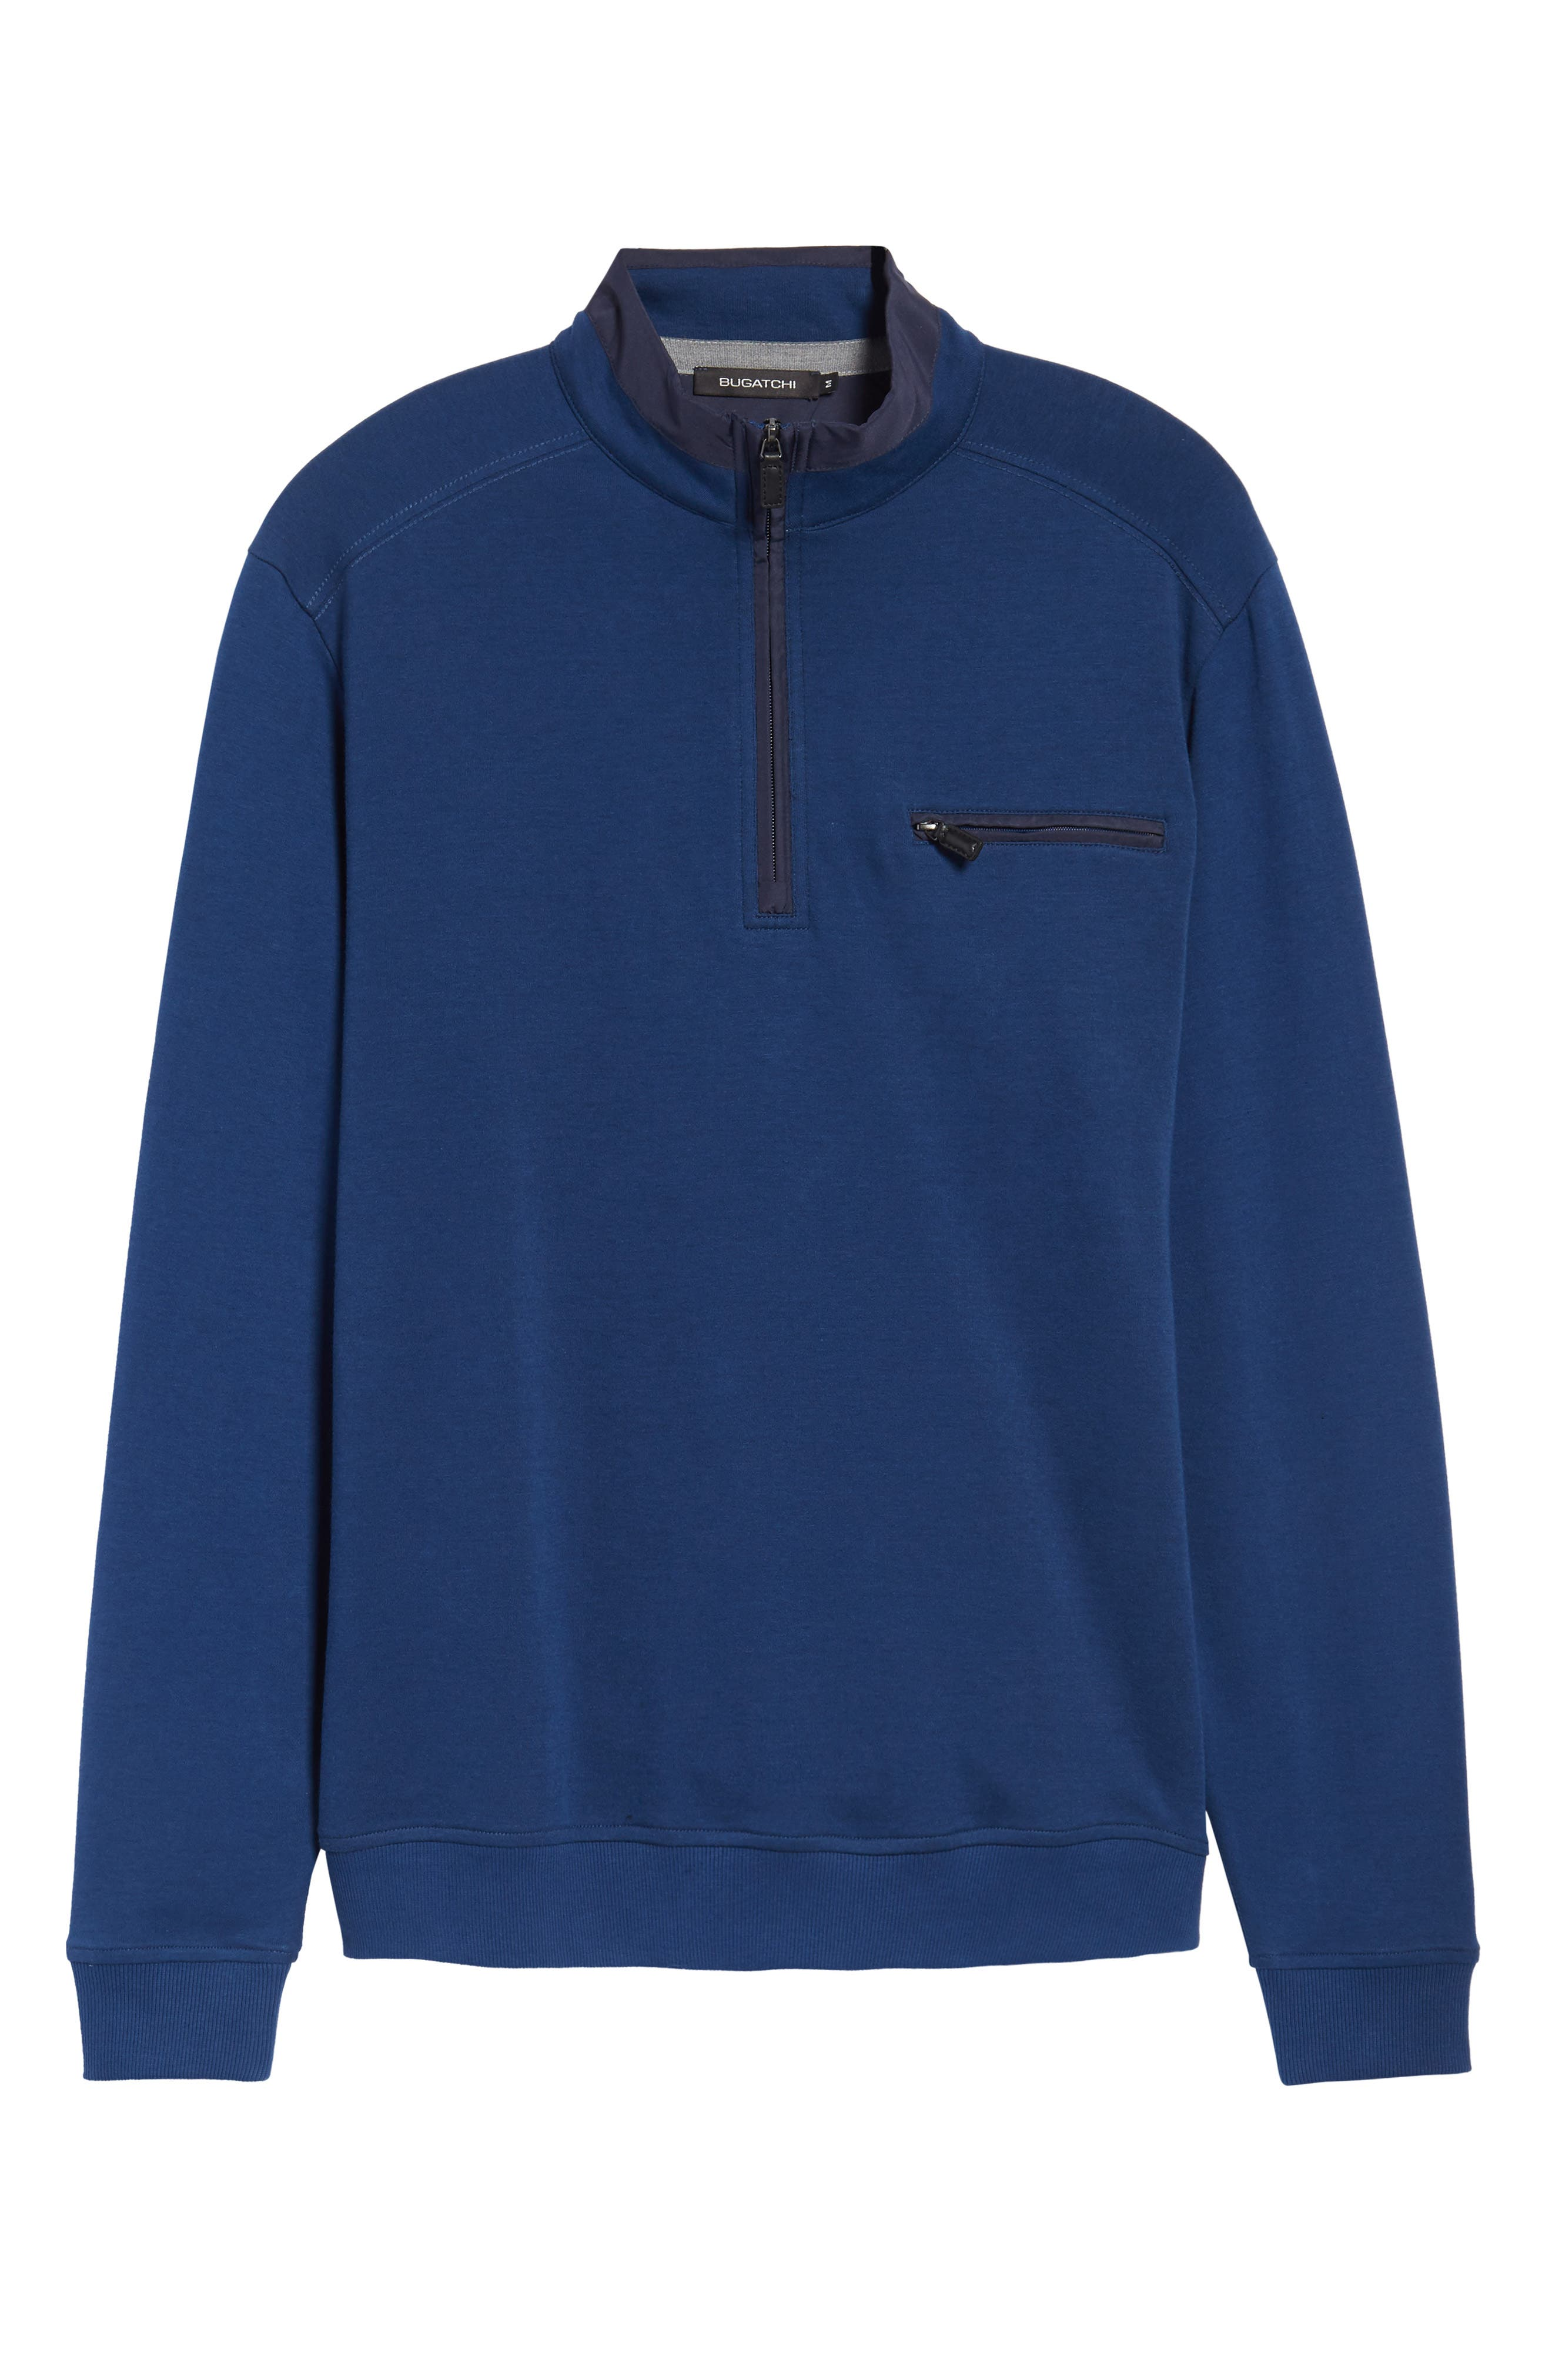 Classic Fit Solid Quarter Zip Pullover,                             Alternate thumbnail 6, color,                             Navy